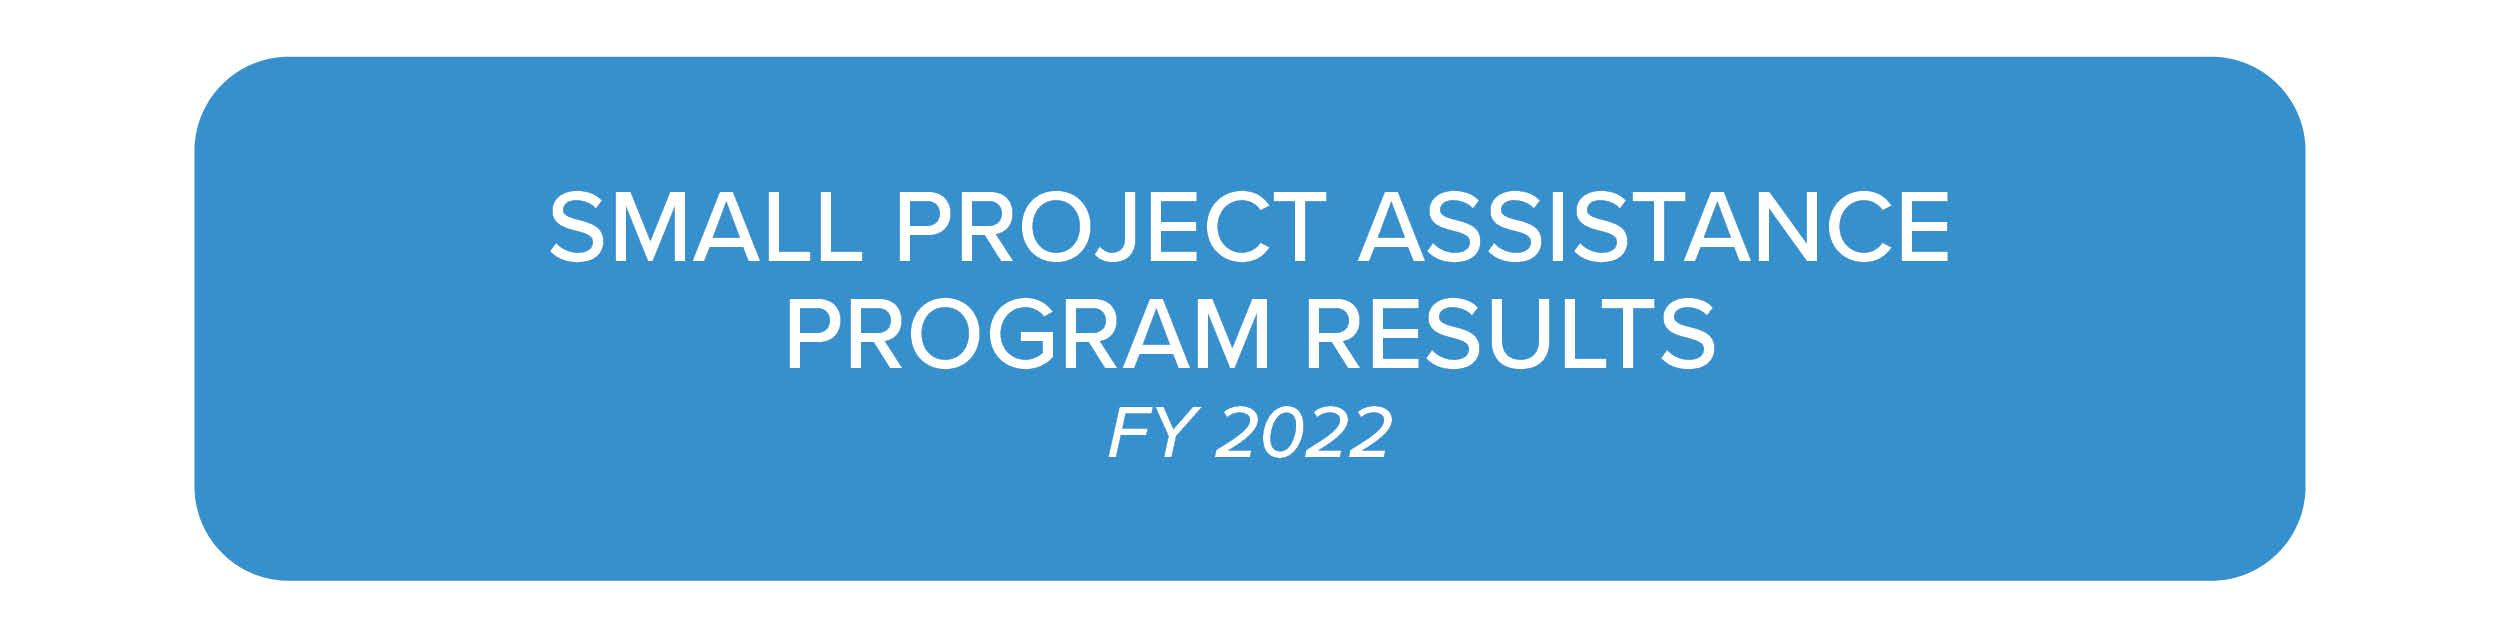 Small Project Assistance Program Results FY22